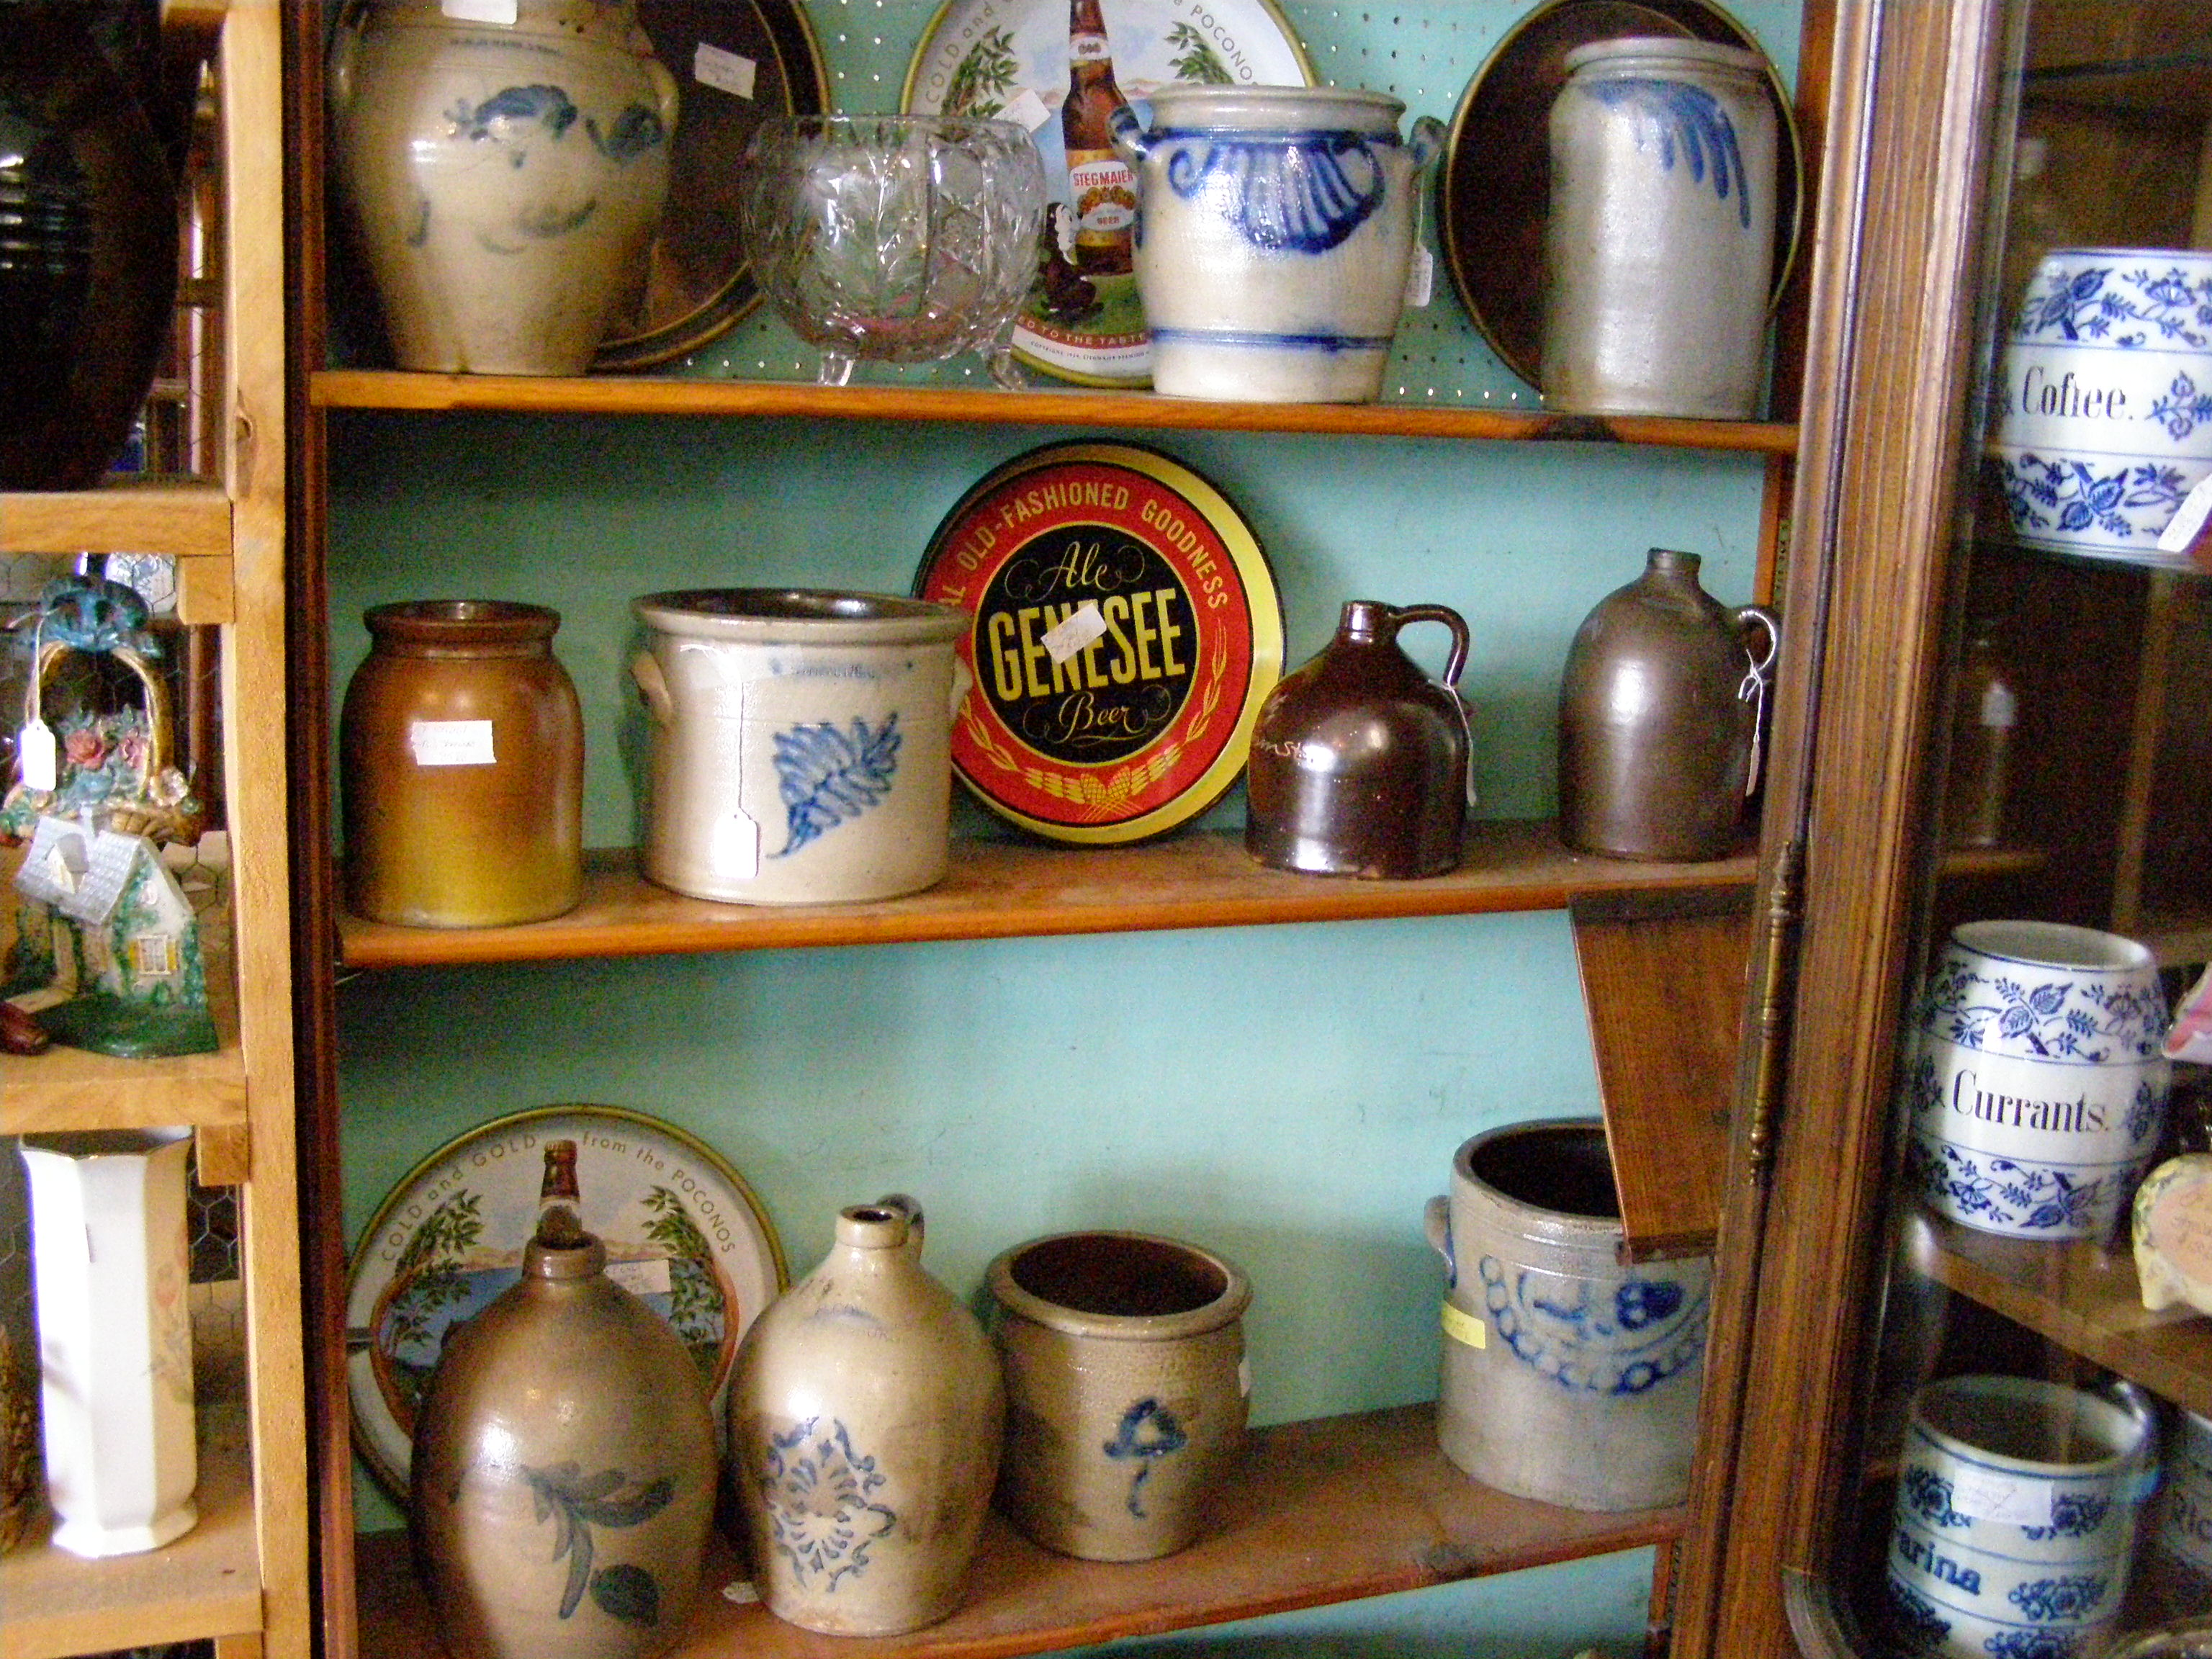 Brown and stone pottery with blue